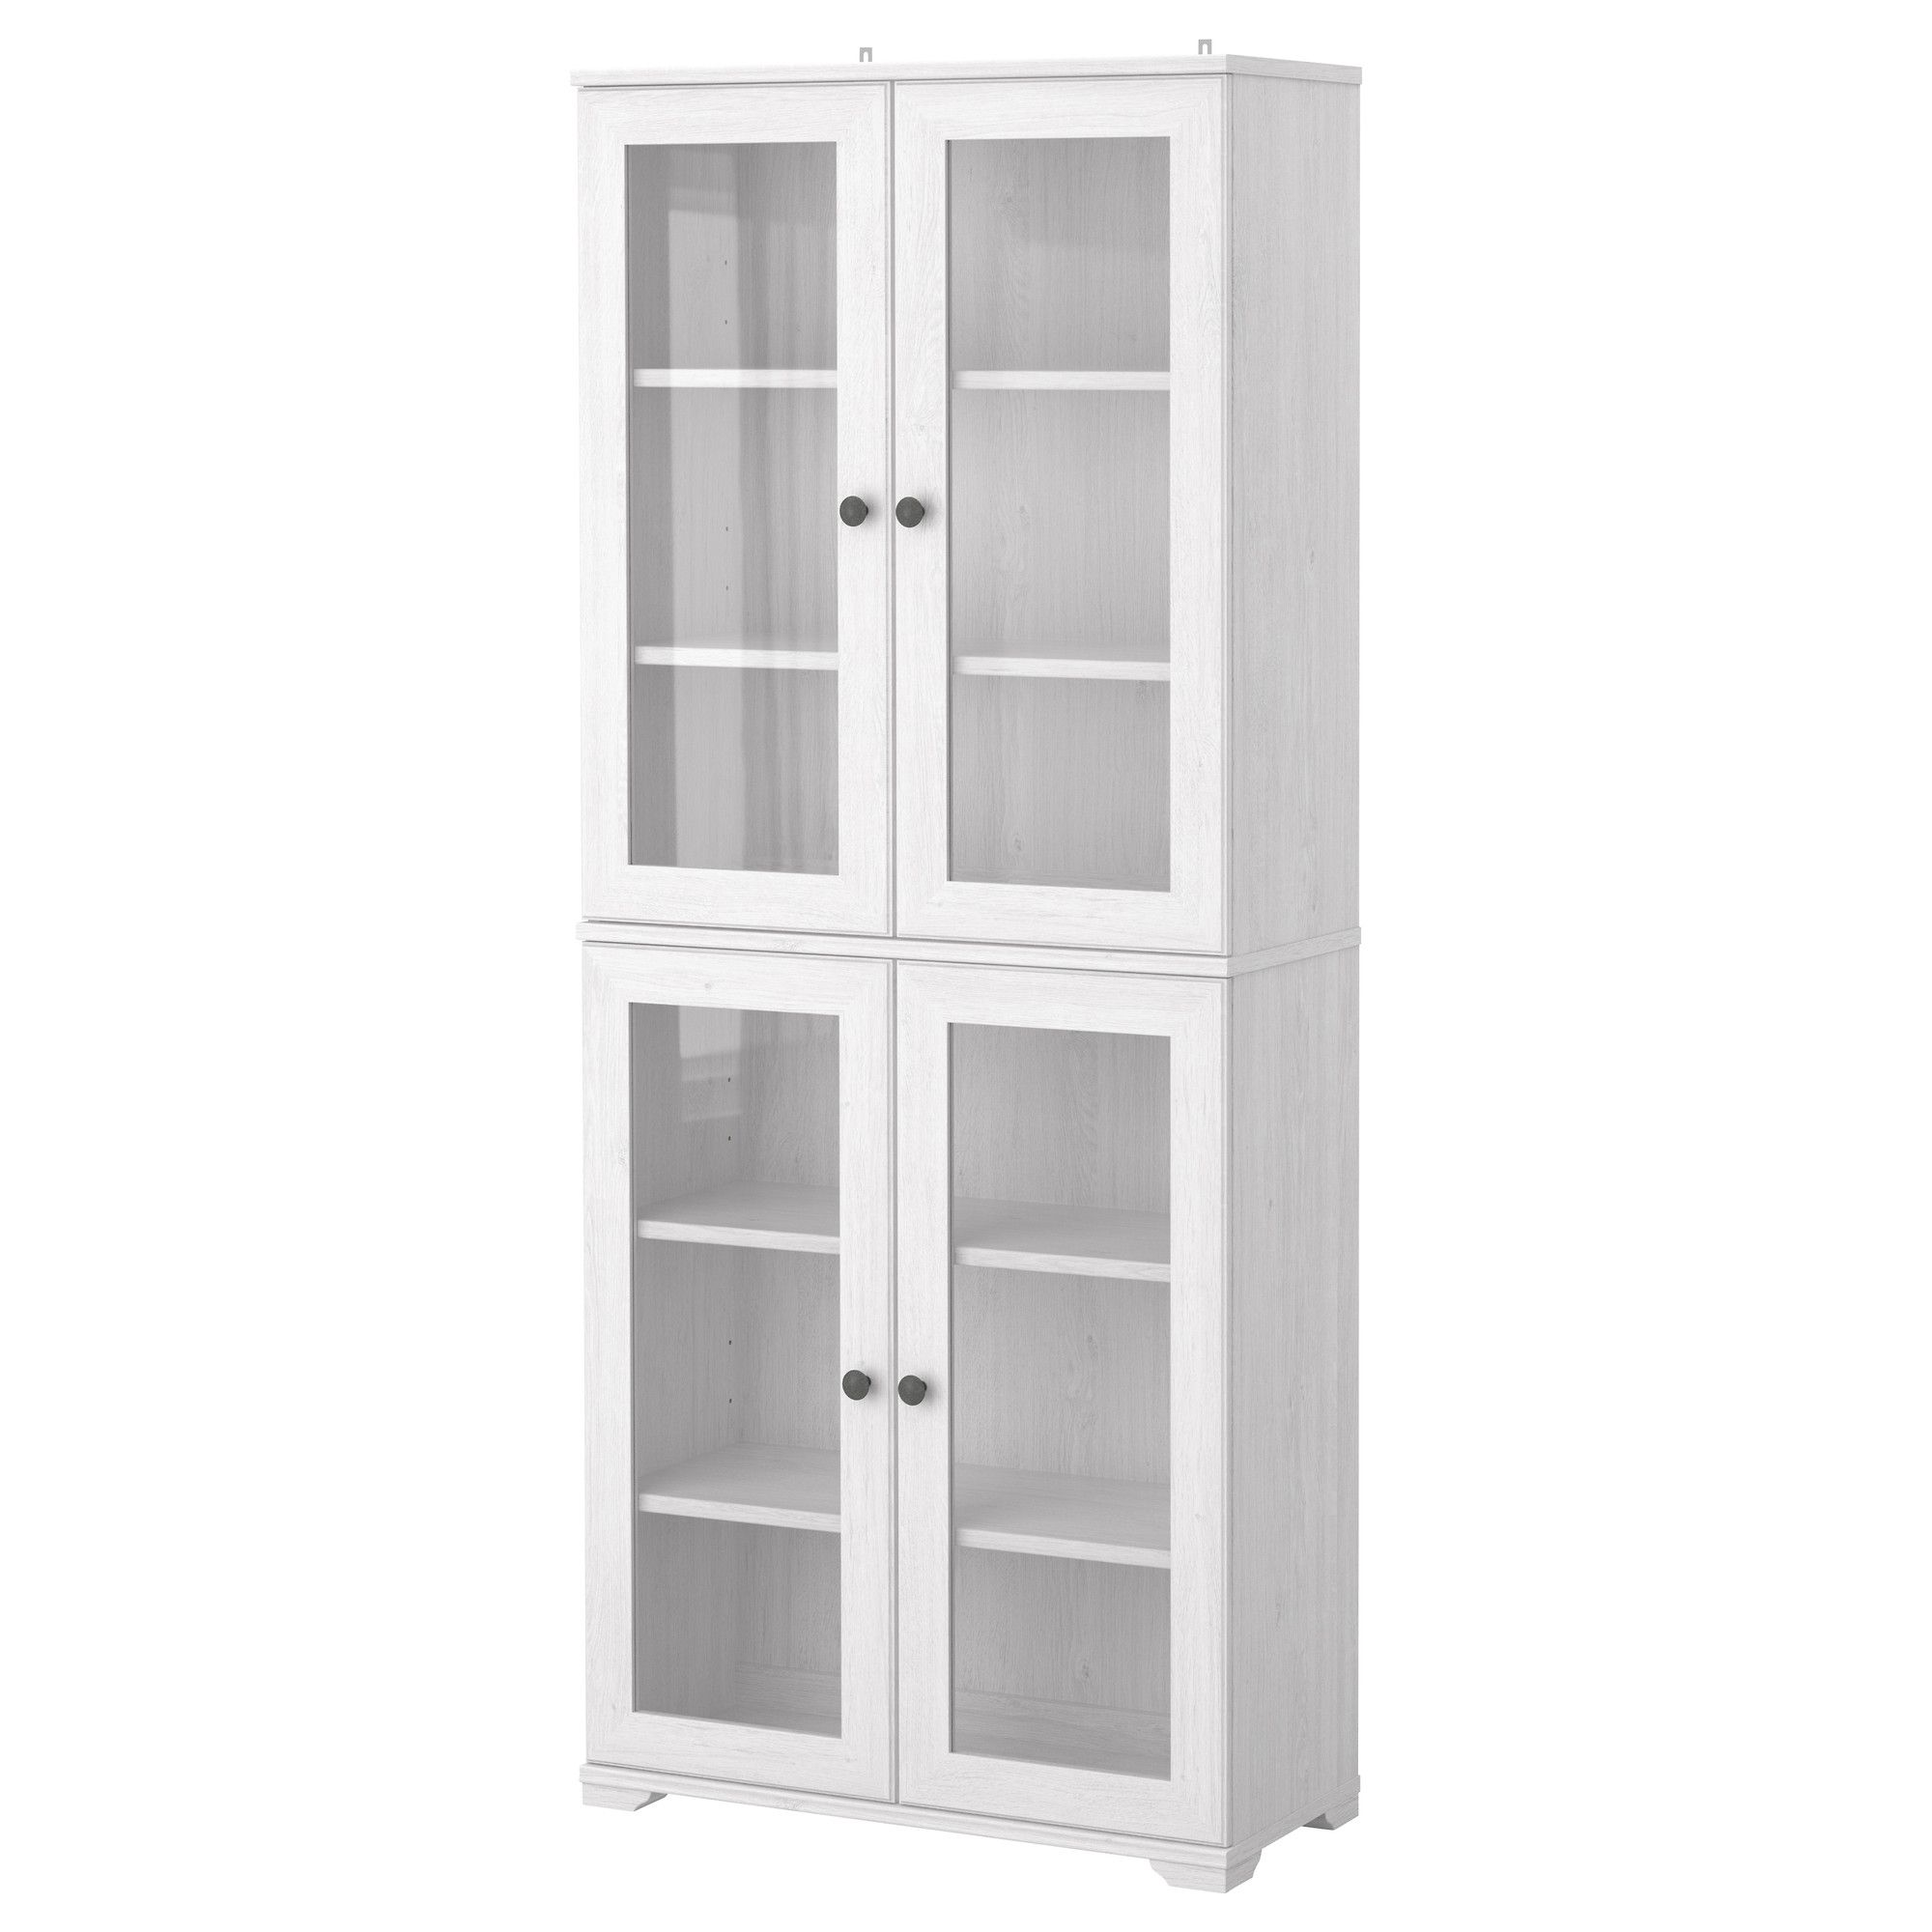 BORGSJ Glass Door Cabinet